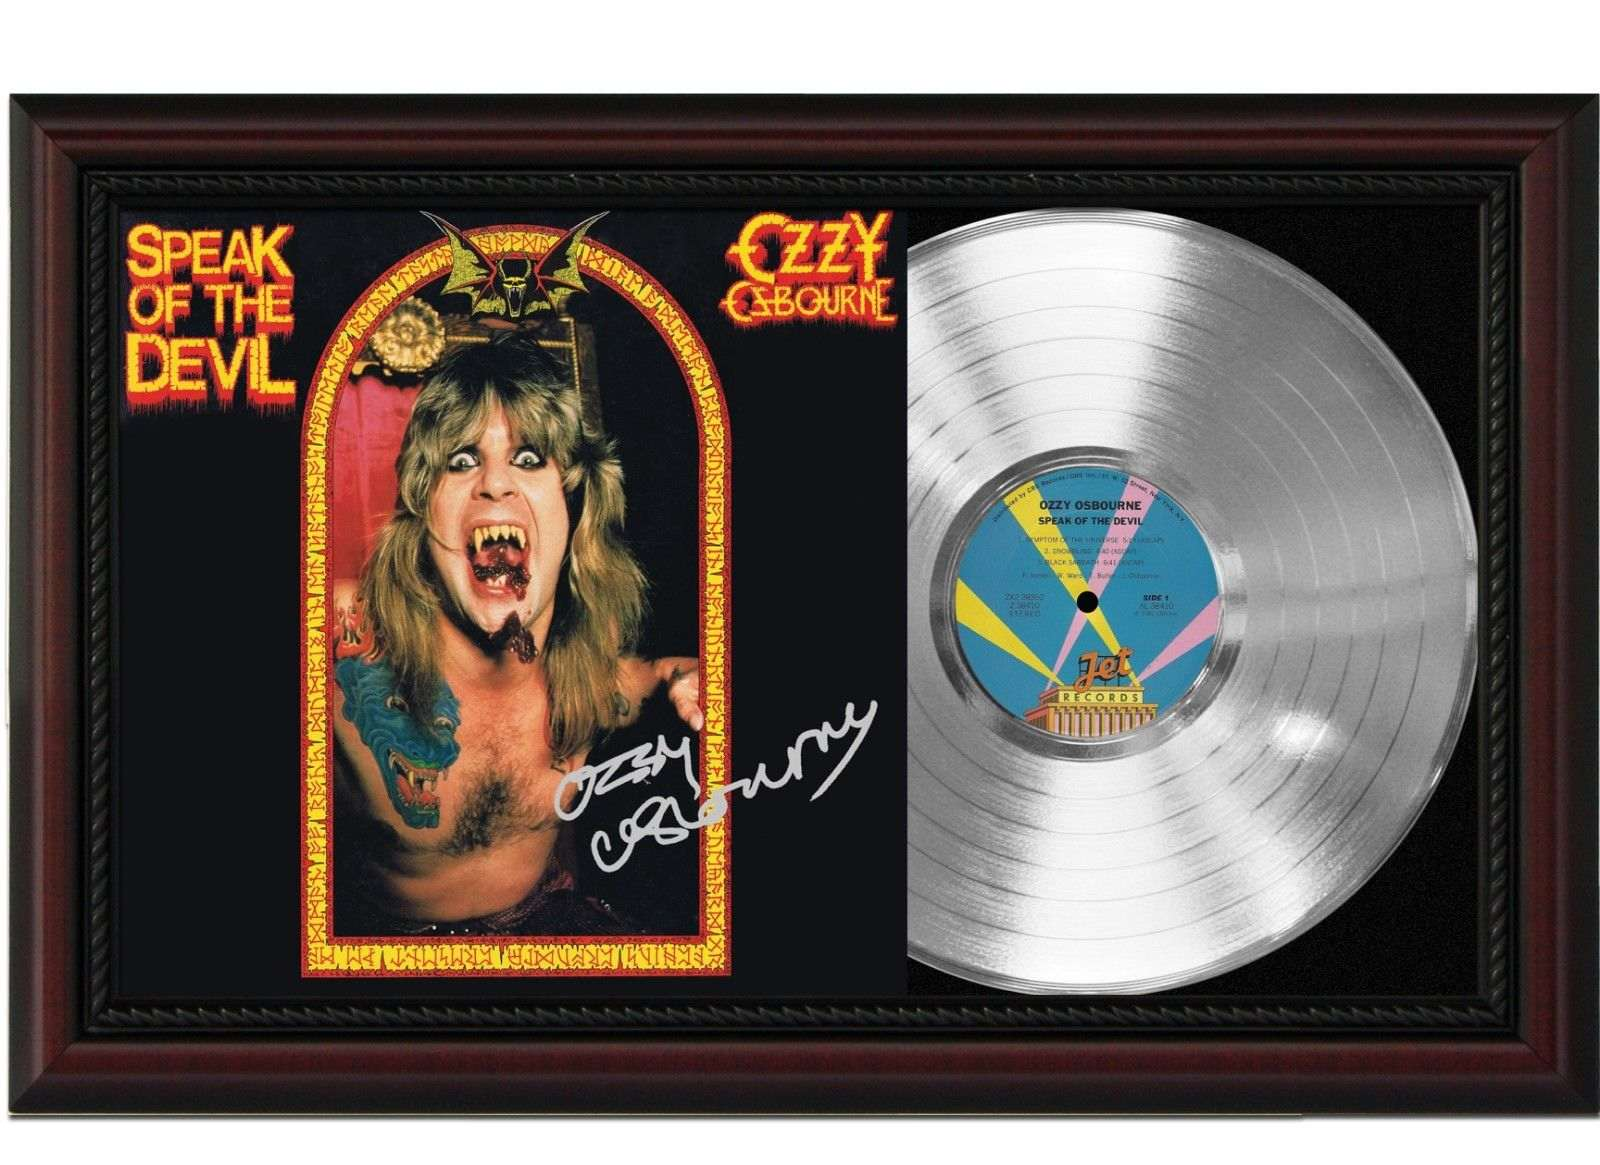 ozzy osbourne speak of the devil cherrywood framed platinum signature display m4 gold record. Black Bedroom Furniture Sets. Home Design Ideas